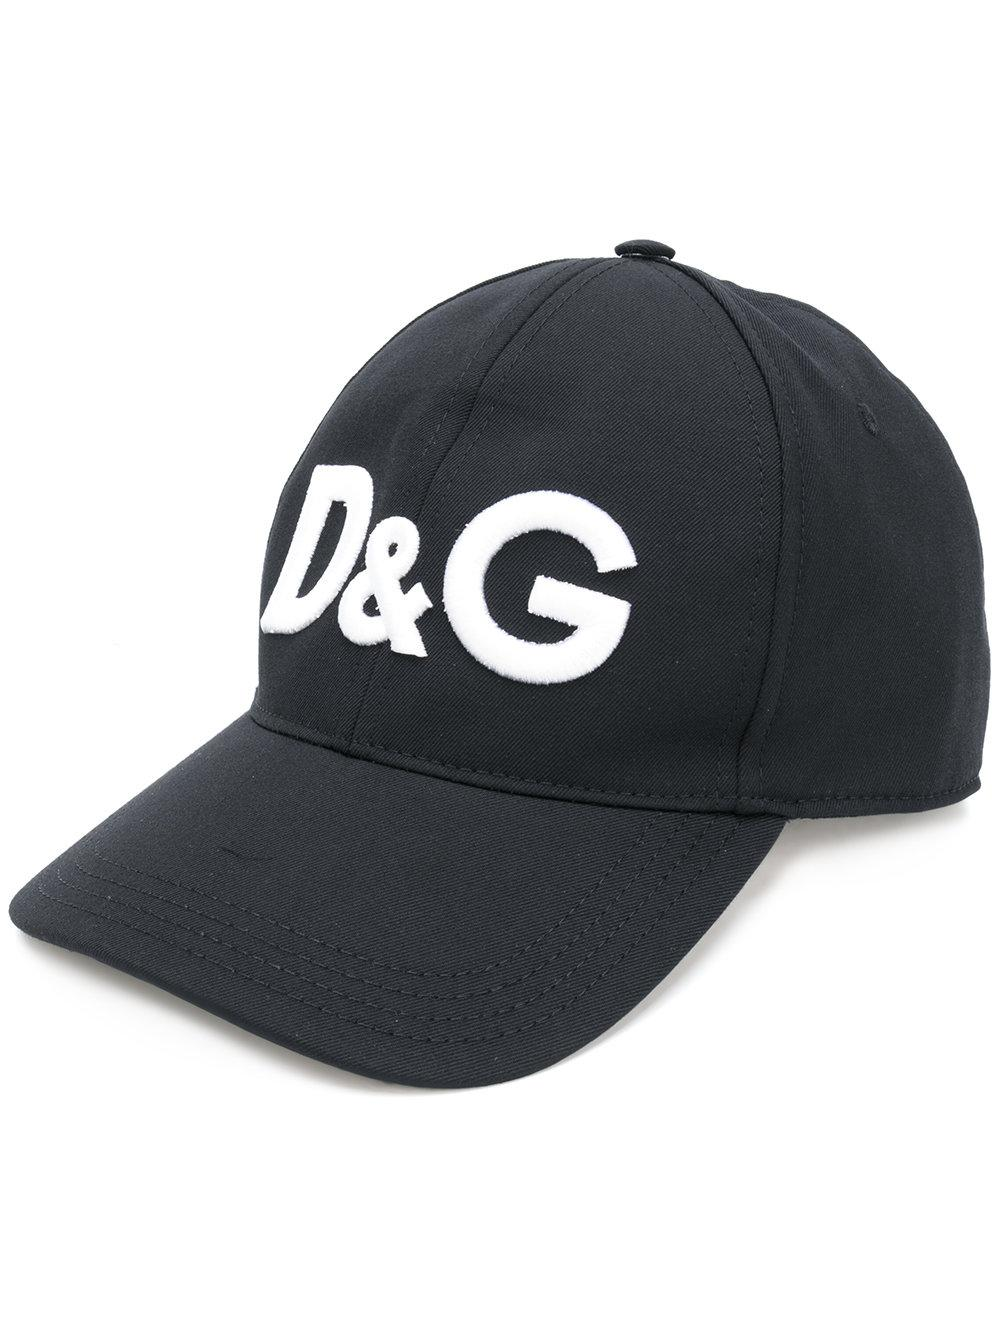 9da7a4367a6 Lyst - Dolce   Gabbana Logo Hat in Black for Men